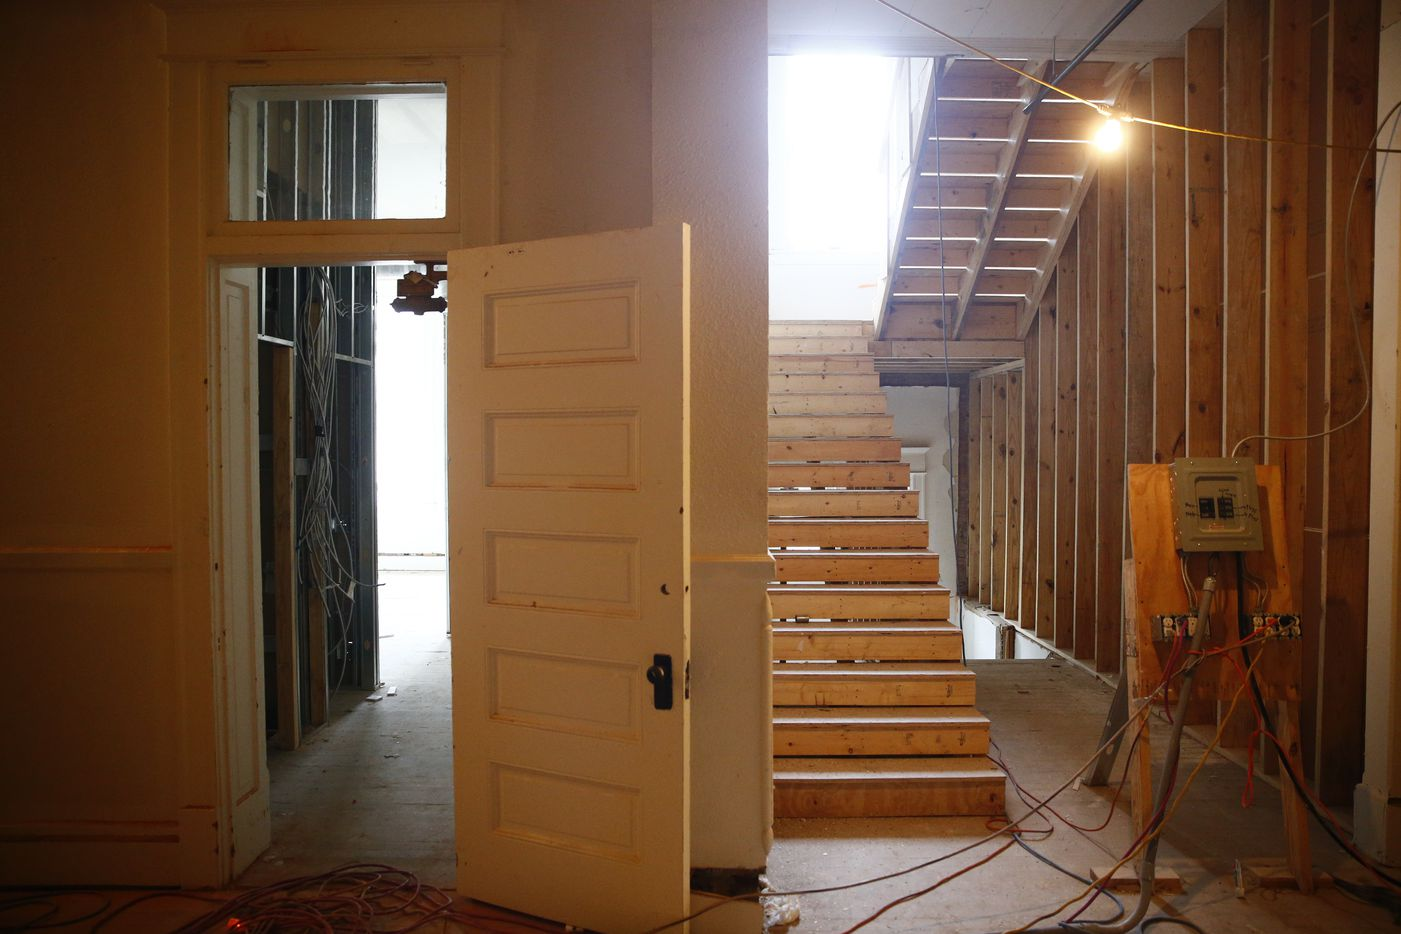 A new staircase in the historic Davy Crockett School, which is being converted into in apartments in Dallas.